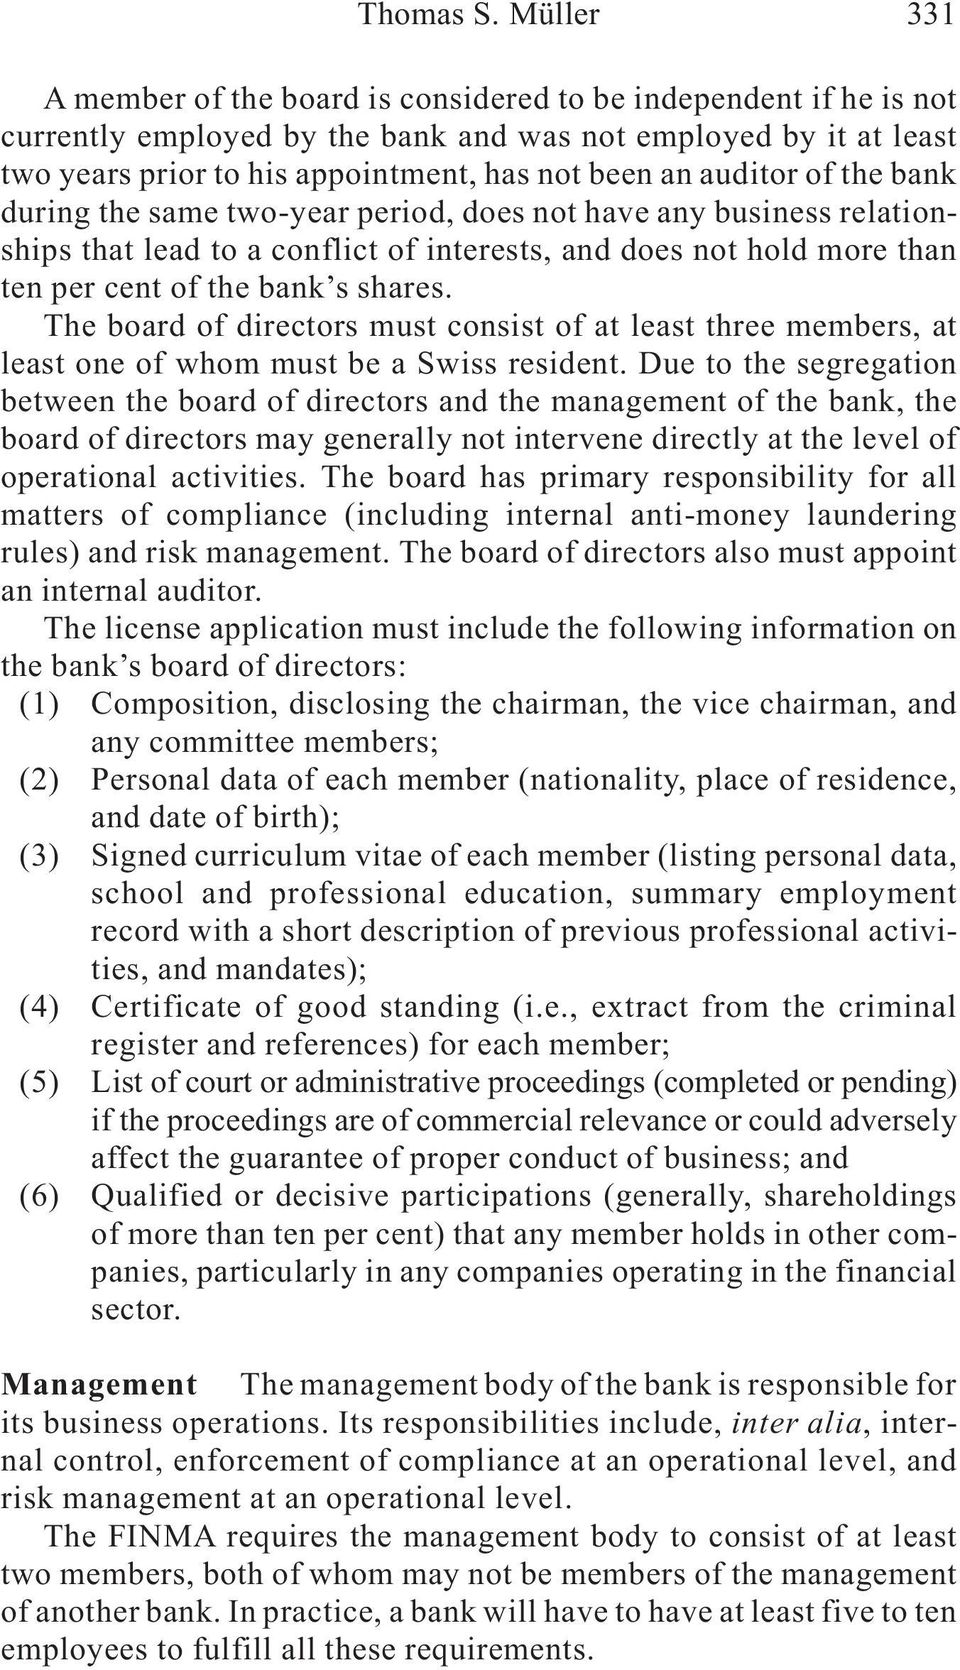 auditor of the bank during the same two-year period, does not have any business relationships that lead to a conflict of interests, and does not hold more than ten per cent of the bank s shares.